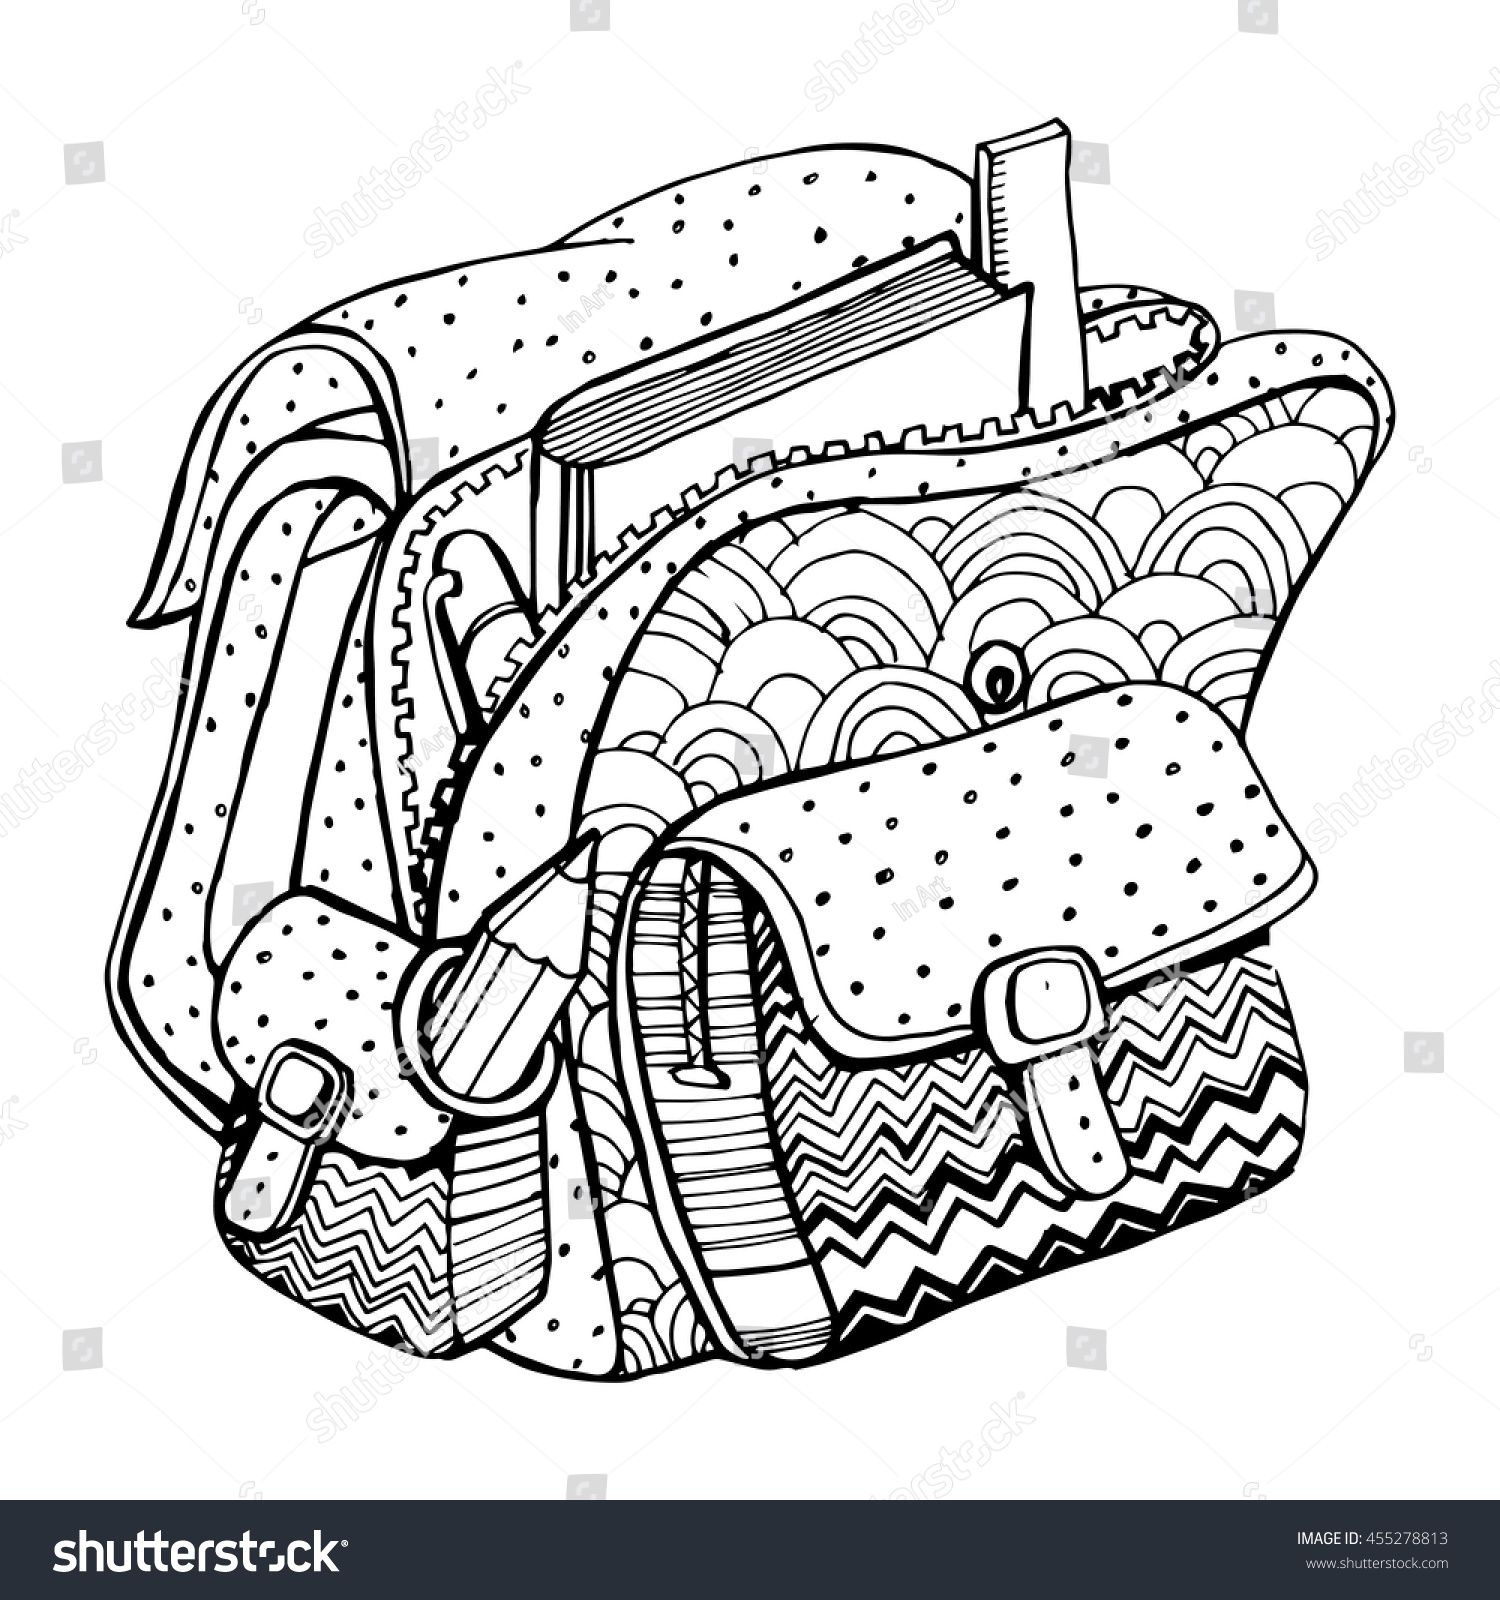 Coloring book bag - School Bag School Supplies Back To School Line Art Black And White